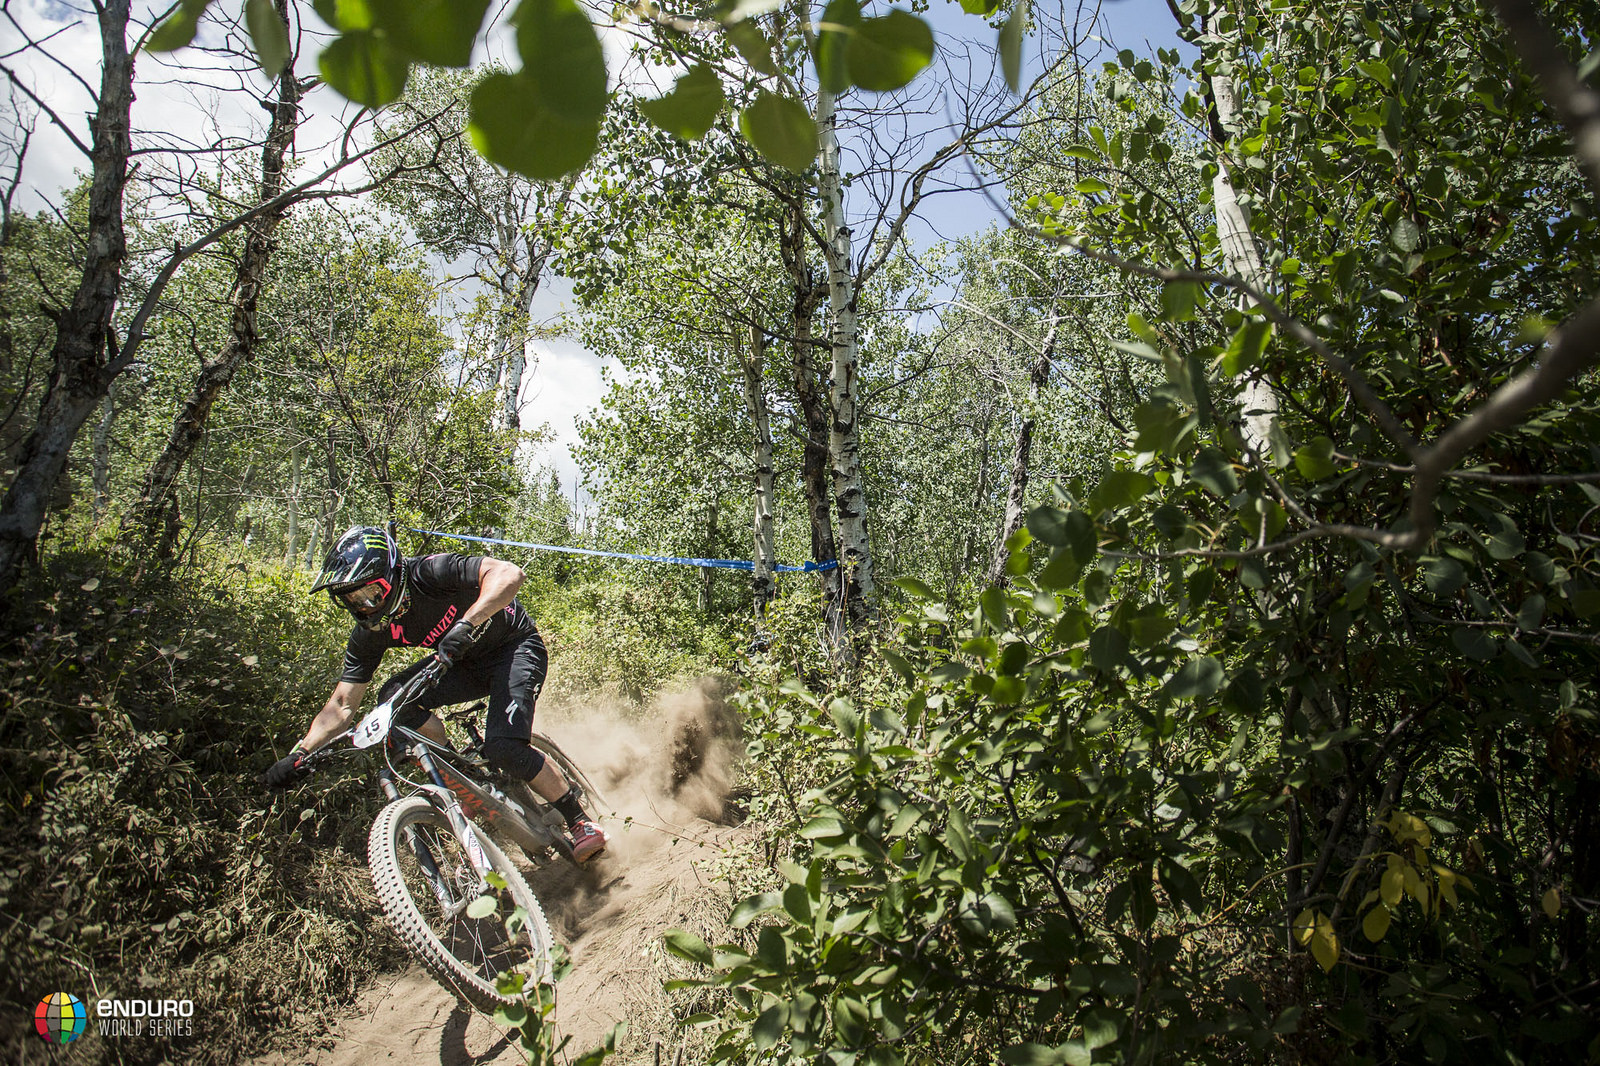 Jared Graves won all three stages and has a commanding lead.